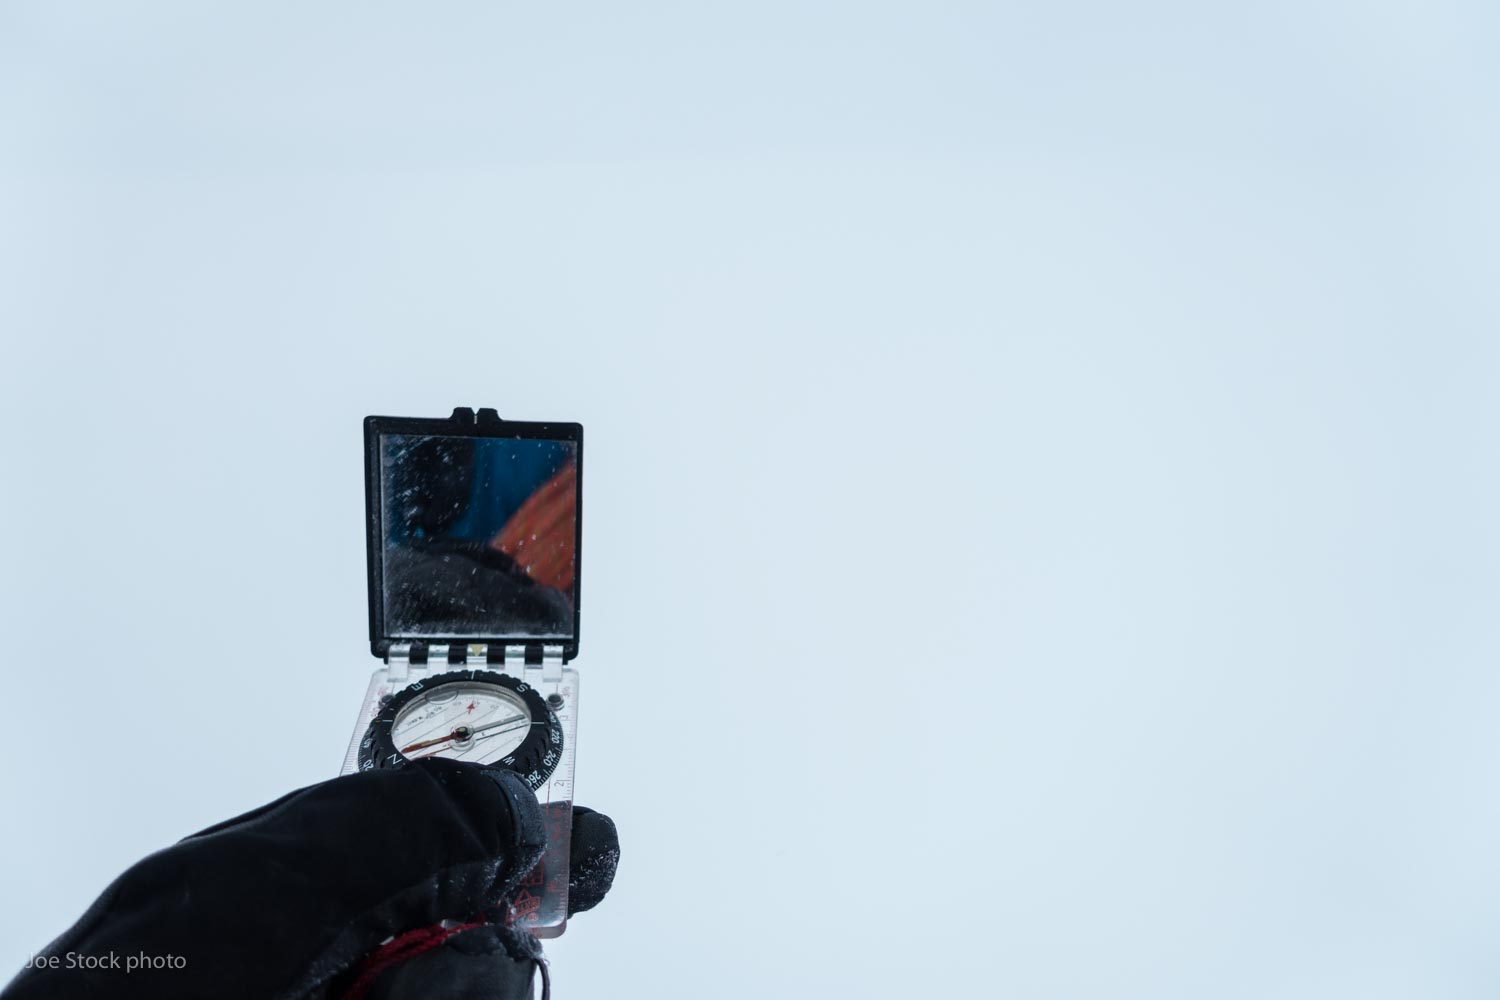 "Phones are the new norm for navigation. At least that's what I was starting to believe. I was more talk than action. It had been a while since I'd done any real whiteout navigation.  On this day a thin, bright fog settled onto the Yentna Glacier and I started walking in a circle of vertigo. I squinted at the Gaia route on the iPhone's washed out screen, but could see nothing. I raised my glasses in the blinding glare for a brief glimpse and was reminded that iPhones are not reliable for navigation. Not only because they are hard to read in bright conditions, but because they freeze up quickly, the screen doesn't work in wet conditions and water can ruin them. As Elliot said, ""The iPhone works when you don't need it.""  I got the job done by using the iPhone to set a bearing on my compass. The compass needle is easy to read in the glare. When the fog lifted my track was a perfect straight line from the compass bearing."